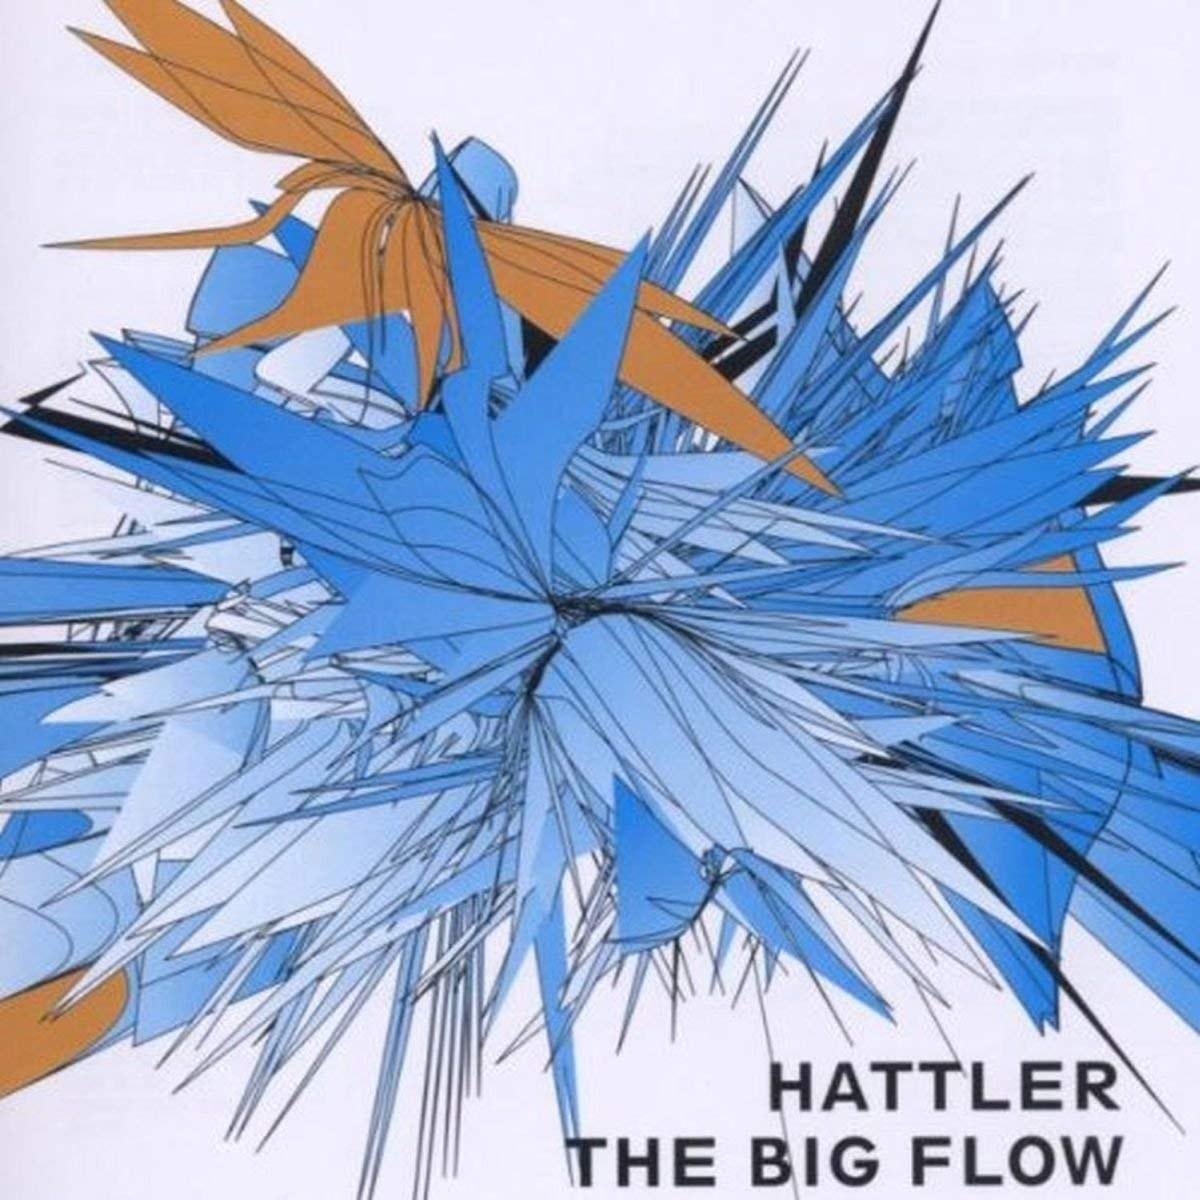 Hattler — The Big Flow